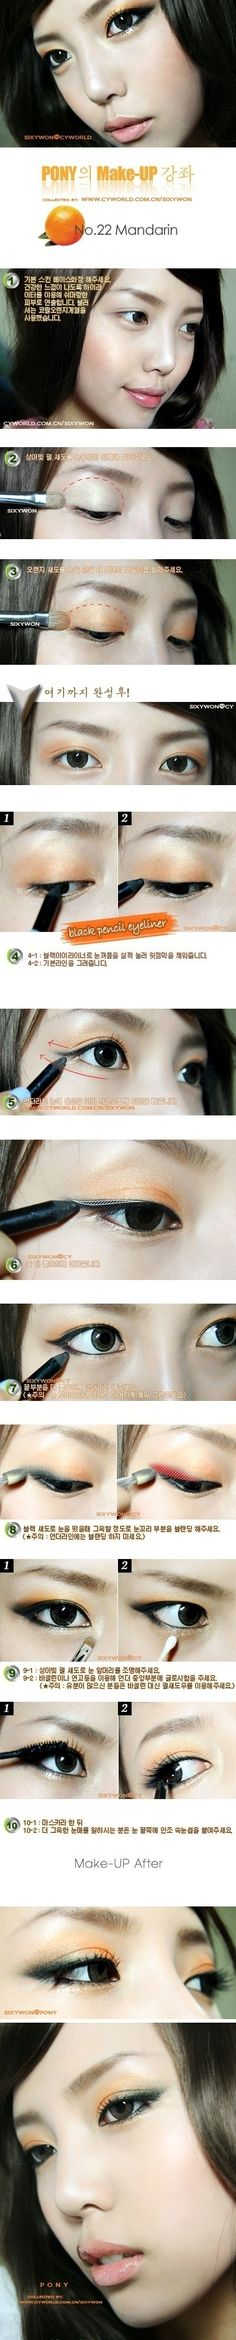 Orange eyeshadow can look amazing when blended with a dark color on the outer corners. | 19 Awesome Eye Makeup Ideas For Asians